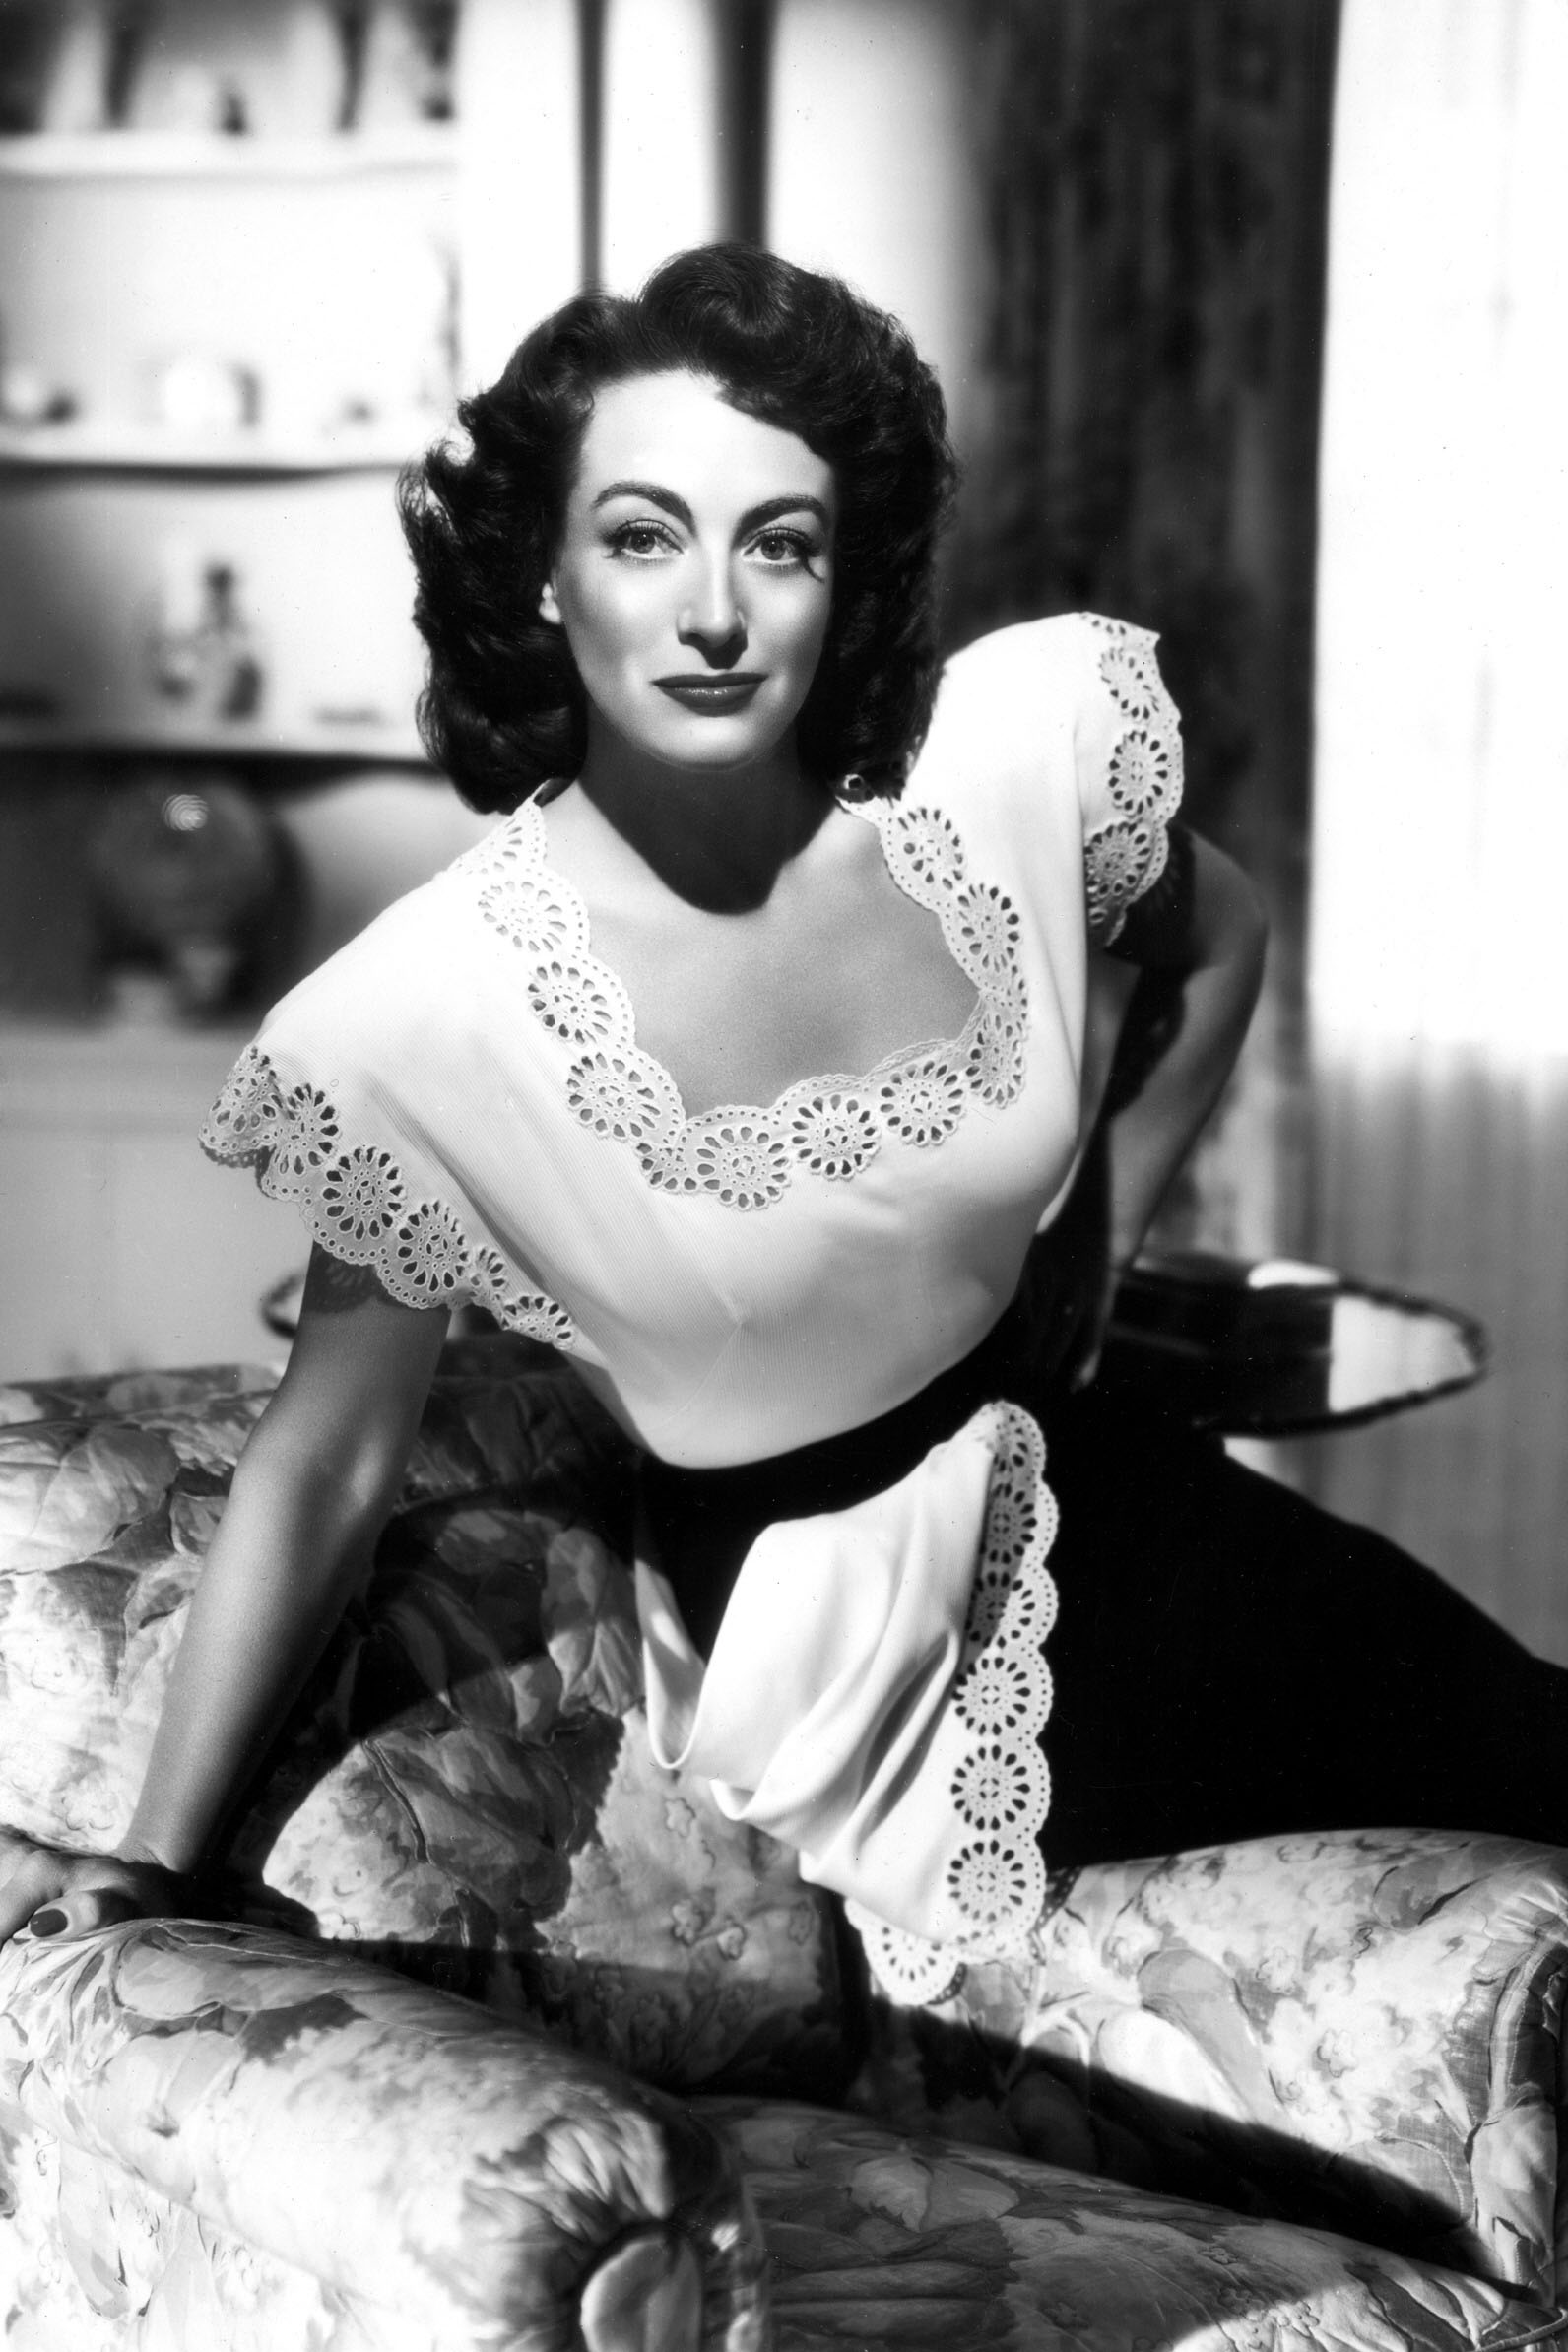 Joan Crawford in 'Mildred Pierce', 1945